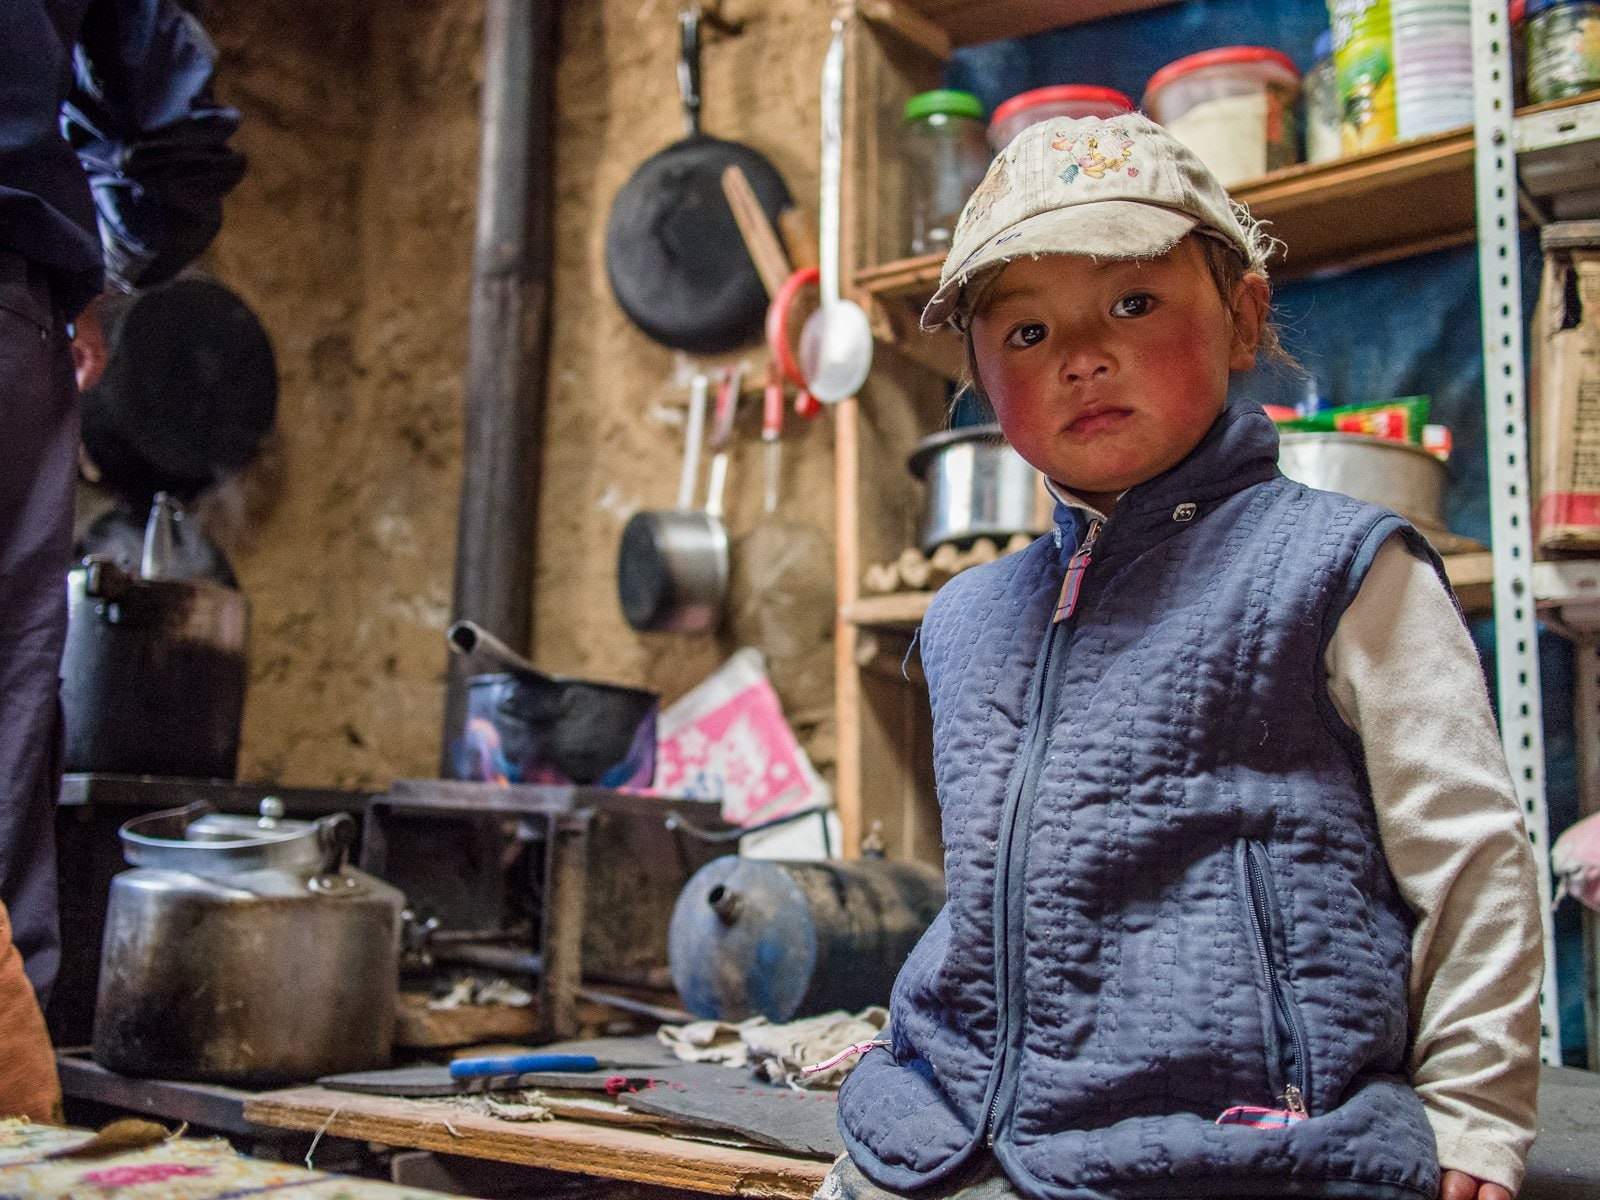 A Sherpa Kid in Nepal